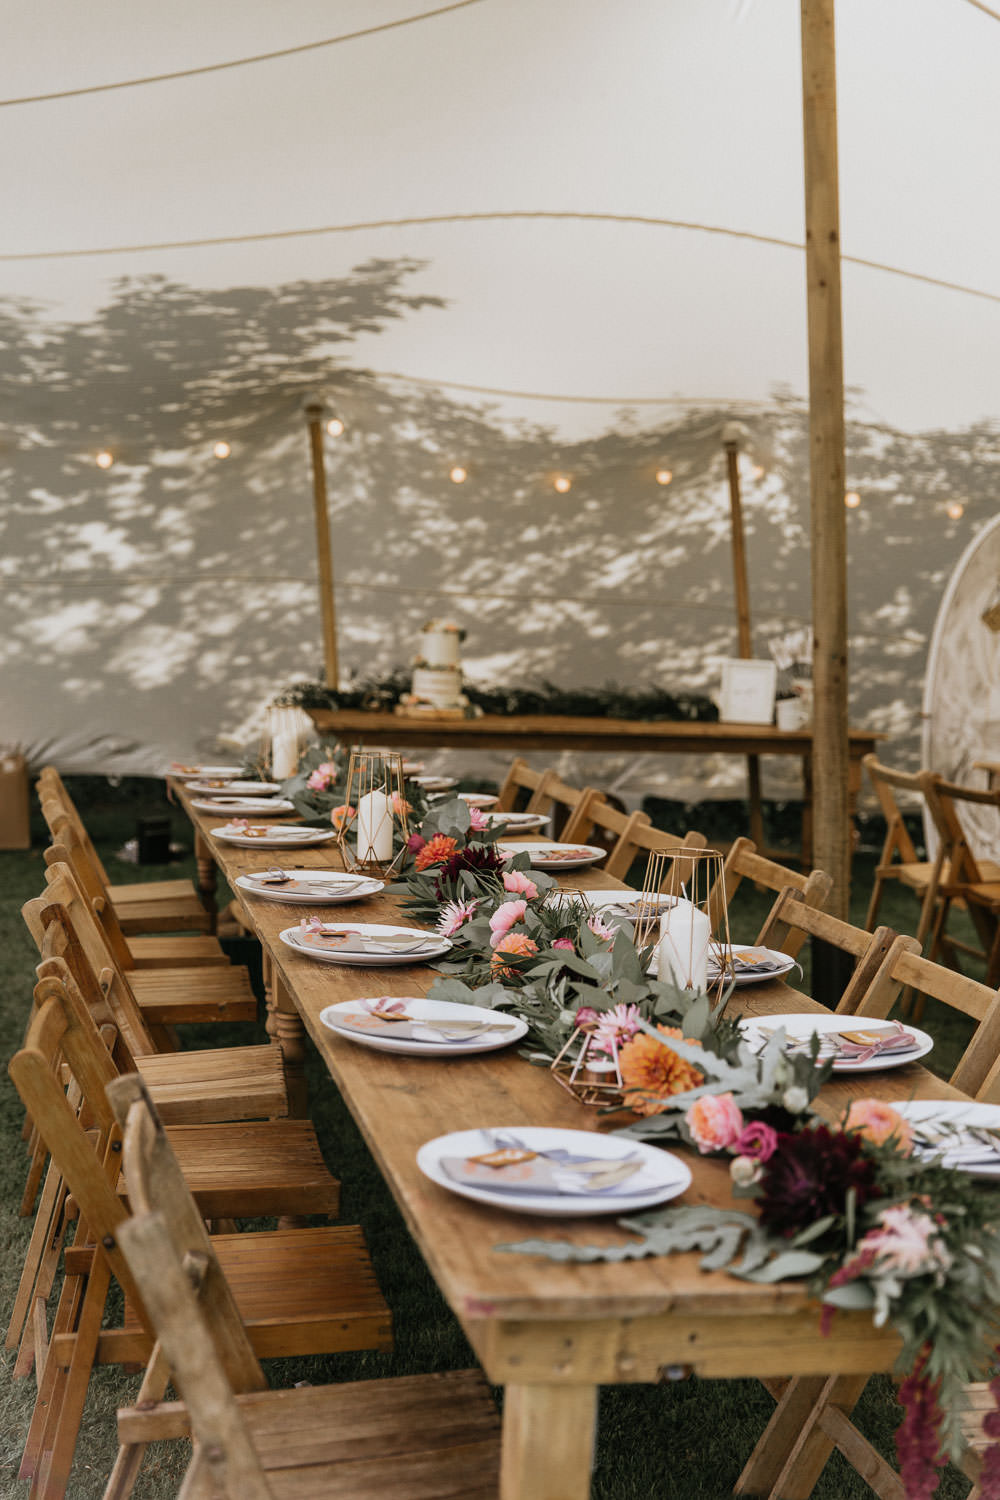 Stretch Tent Outdoor Festoon Lights Long Wooden Antique Tables Chairs Flowers Summer Boho Wedding Wild Tide Weddings